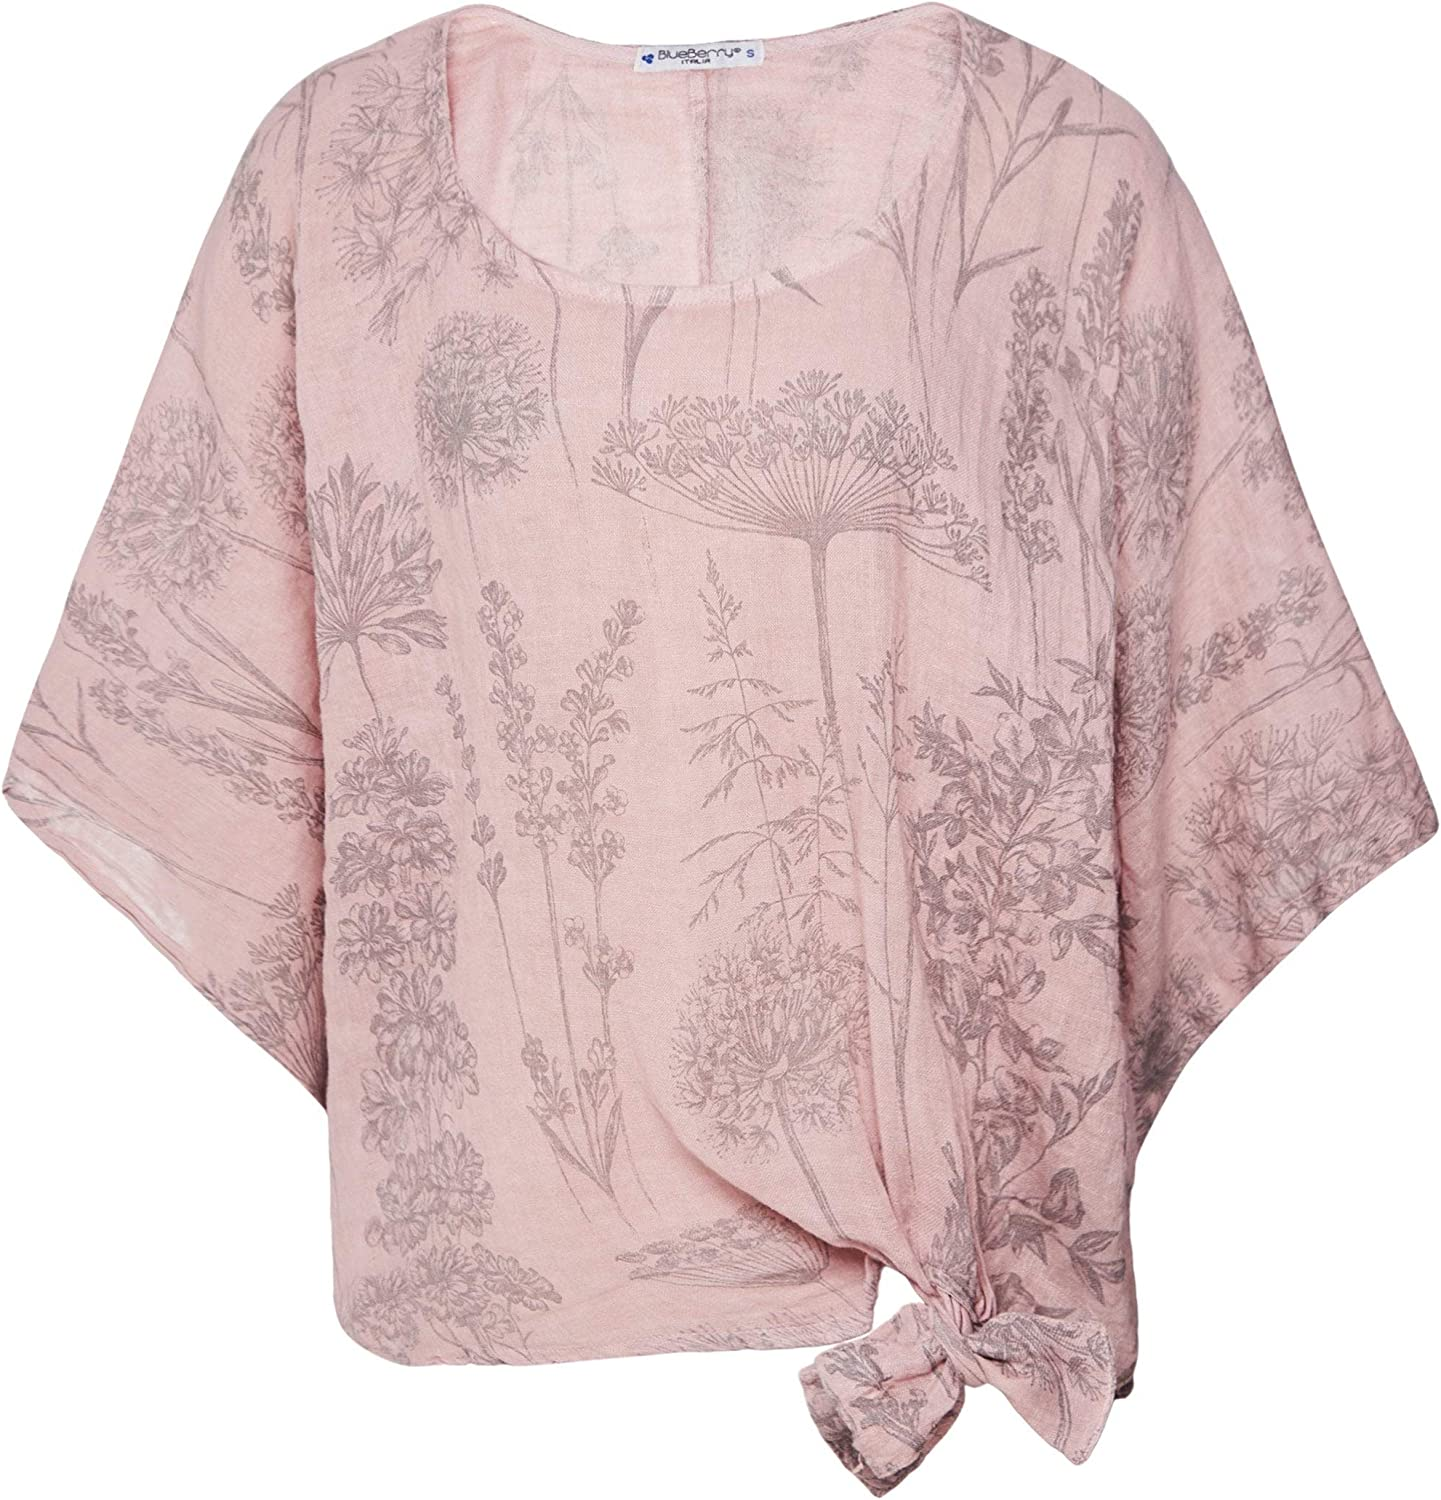 blueeberry Italia Women's Linen Wildflower Print Top Pink